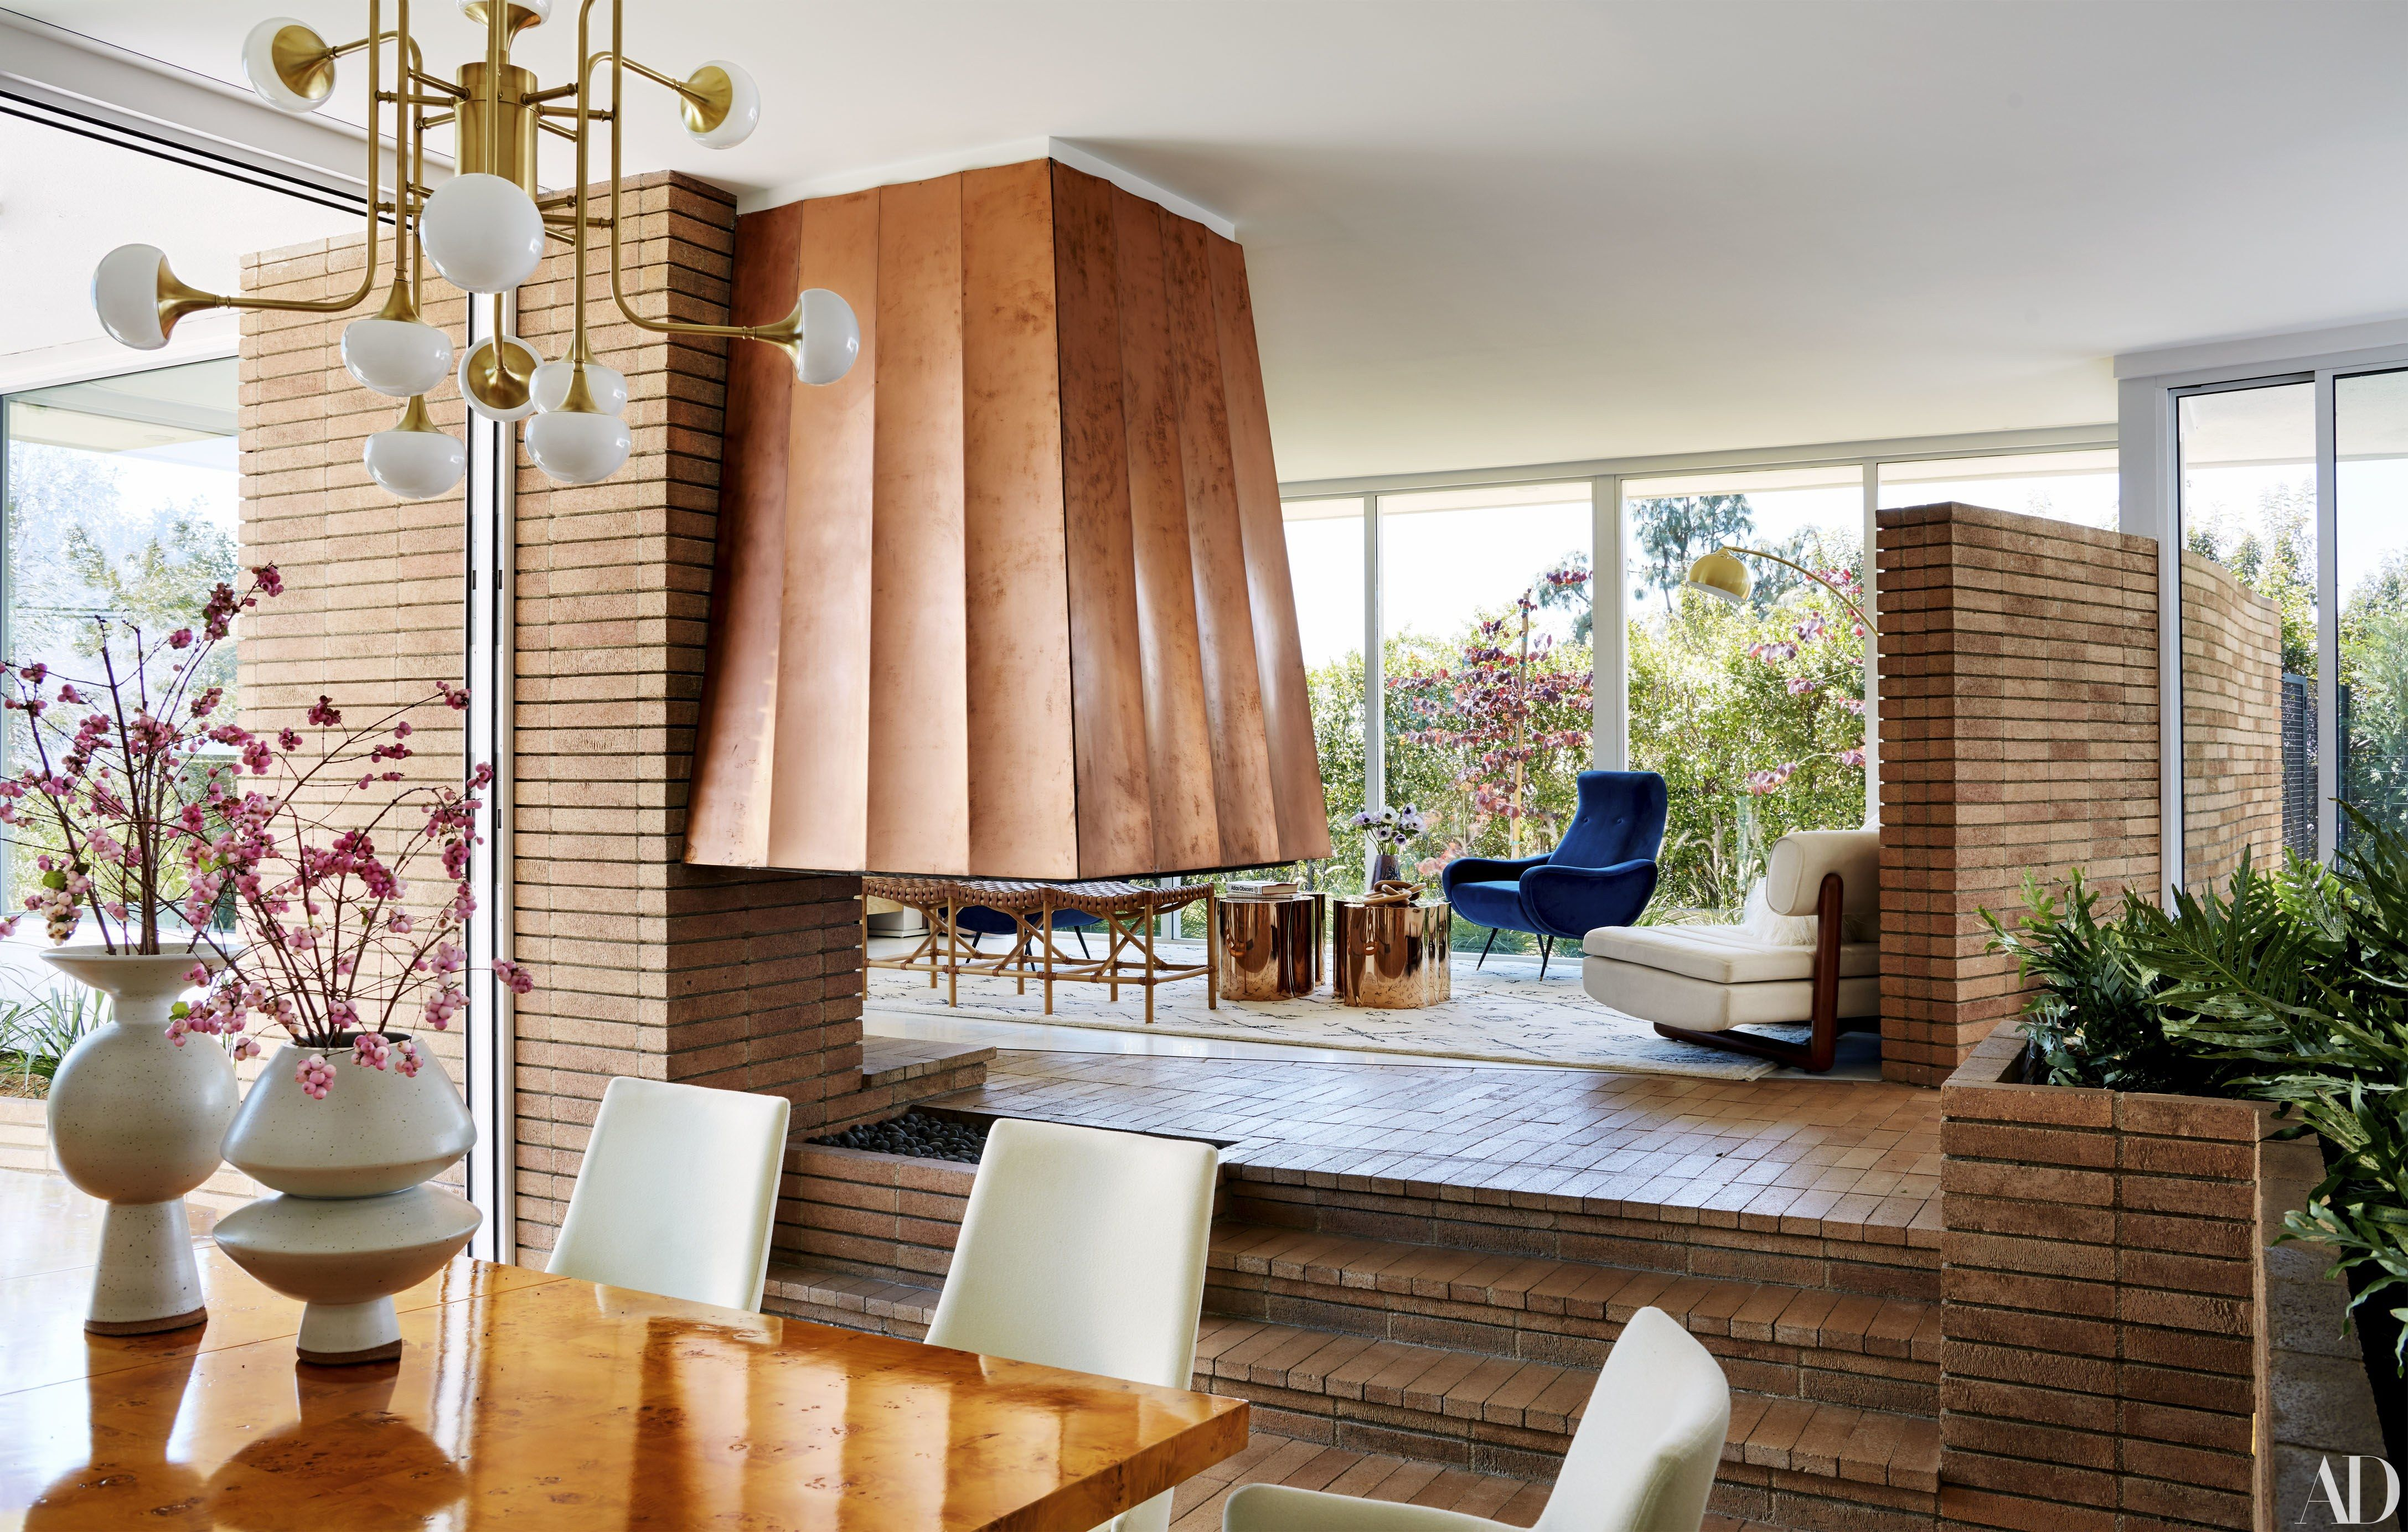 Inside mandy moore   pasadena home photos architectural digest ahhhh sadena  love you and how that brick wall in the upper right is also interiors pinterest rh